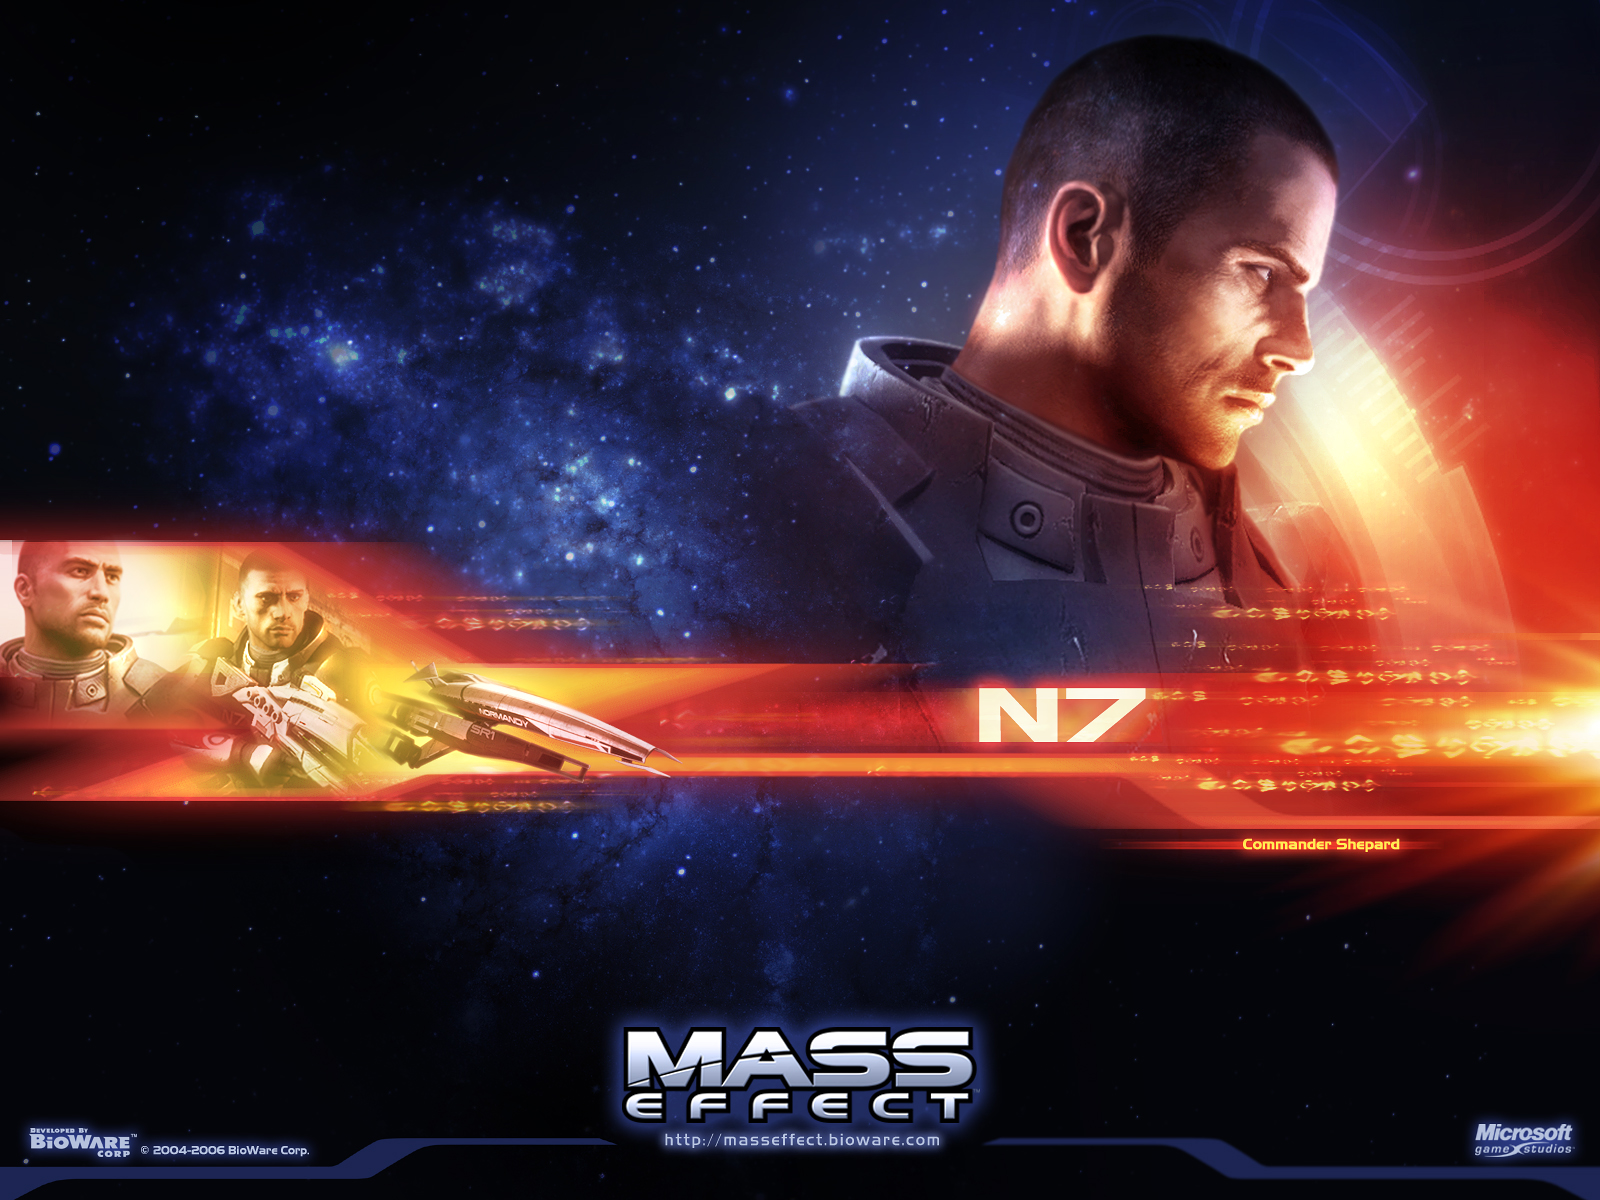 Mass Effect images Wallpapers (Shepard) HD wallpaper and background photos